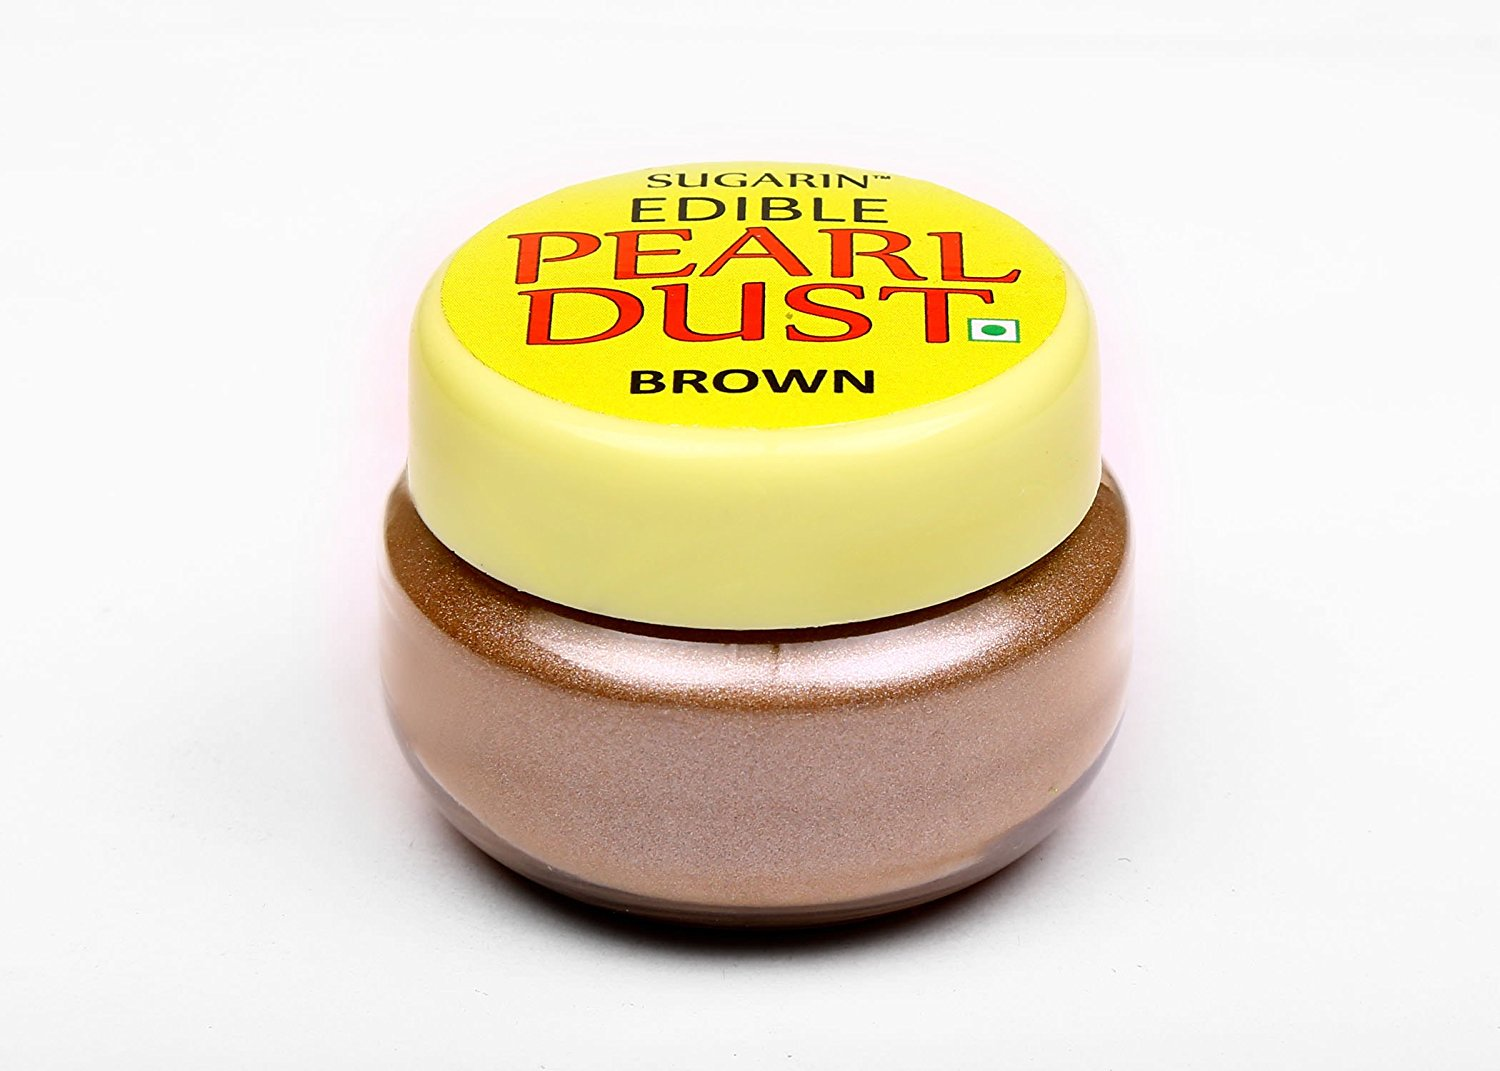 31705 SUGARIN Edible Pearl Dust, Brown, 4.25 gm